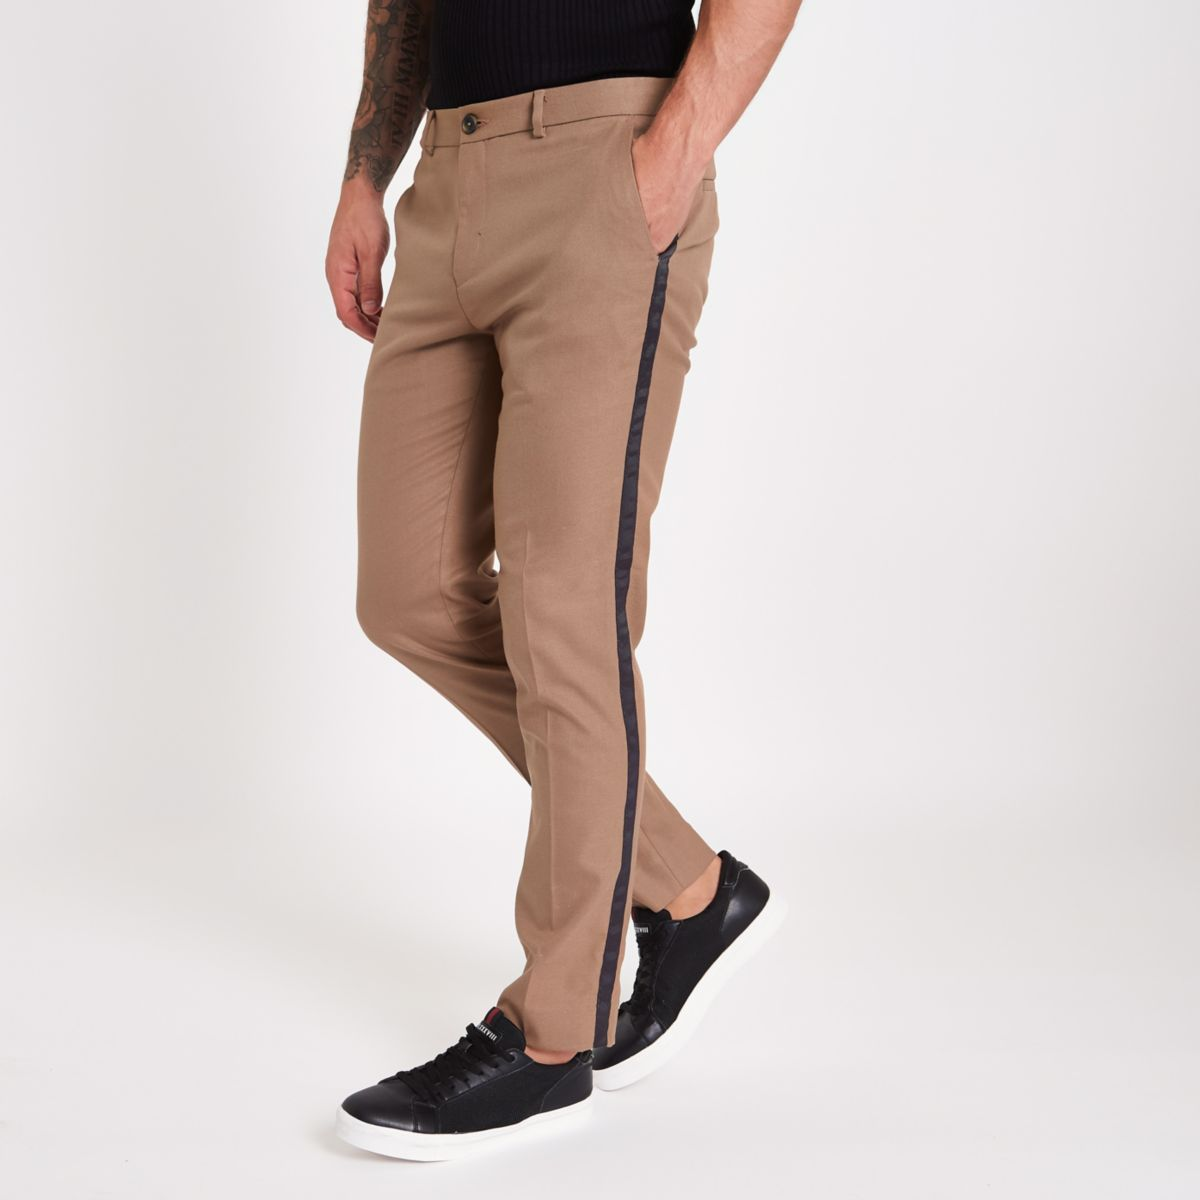 Brown tape side skinny fit pants